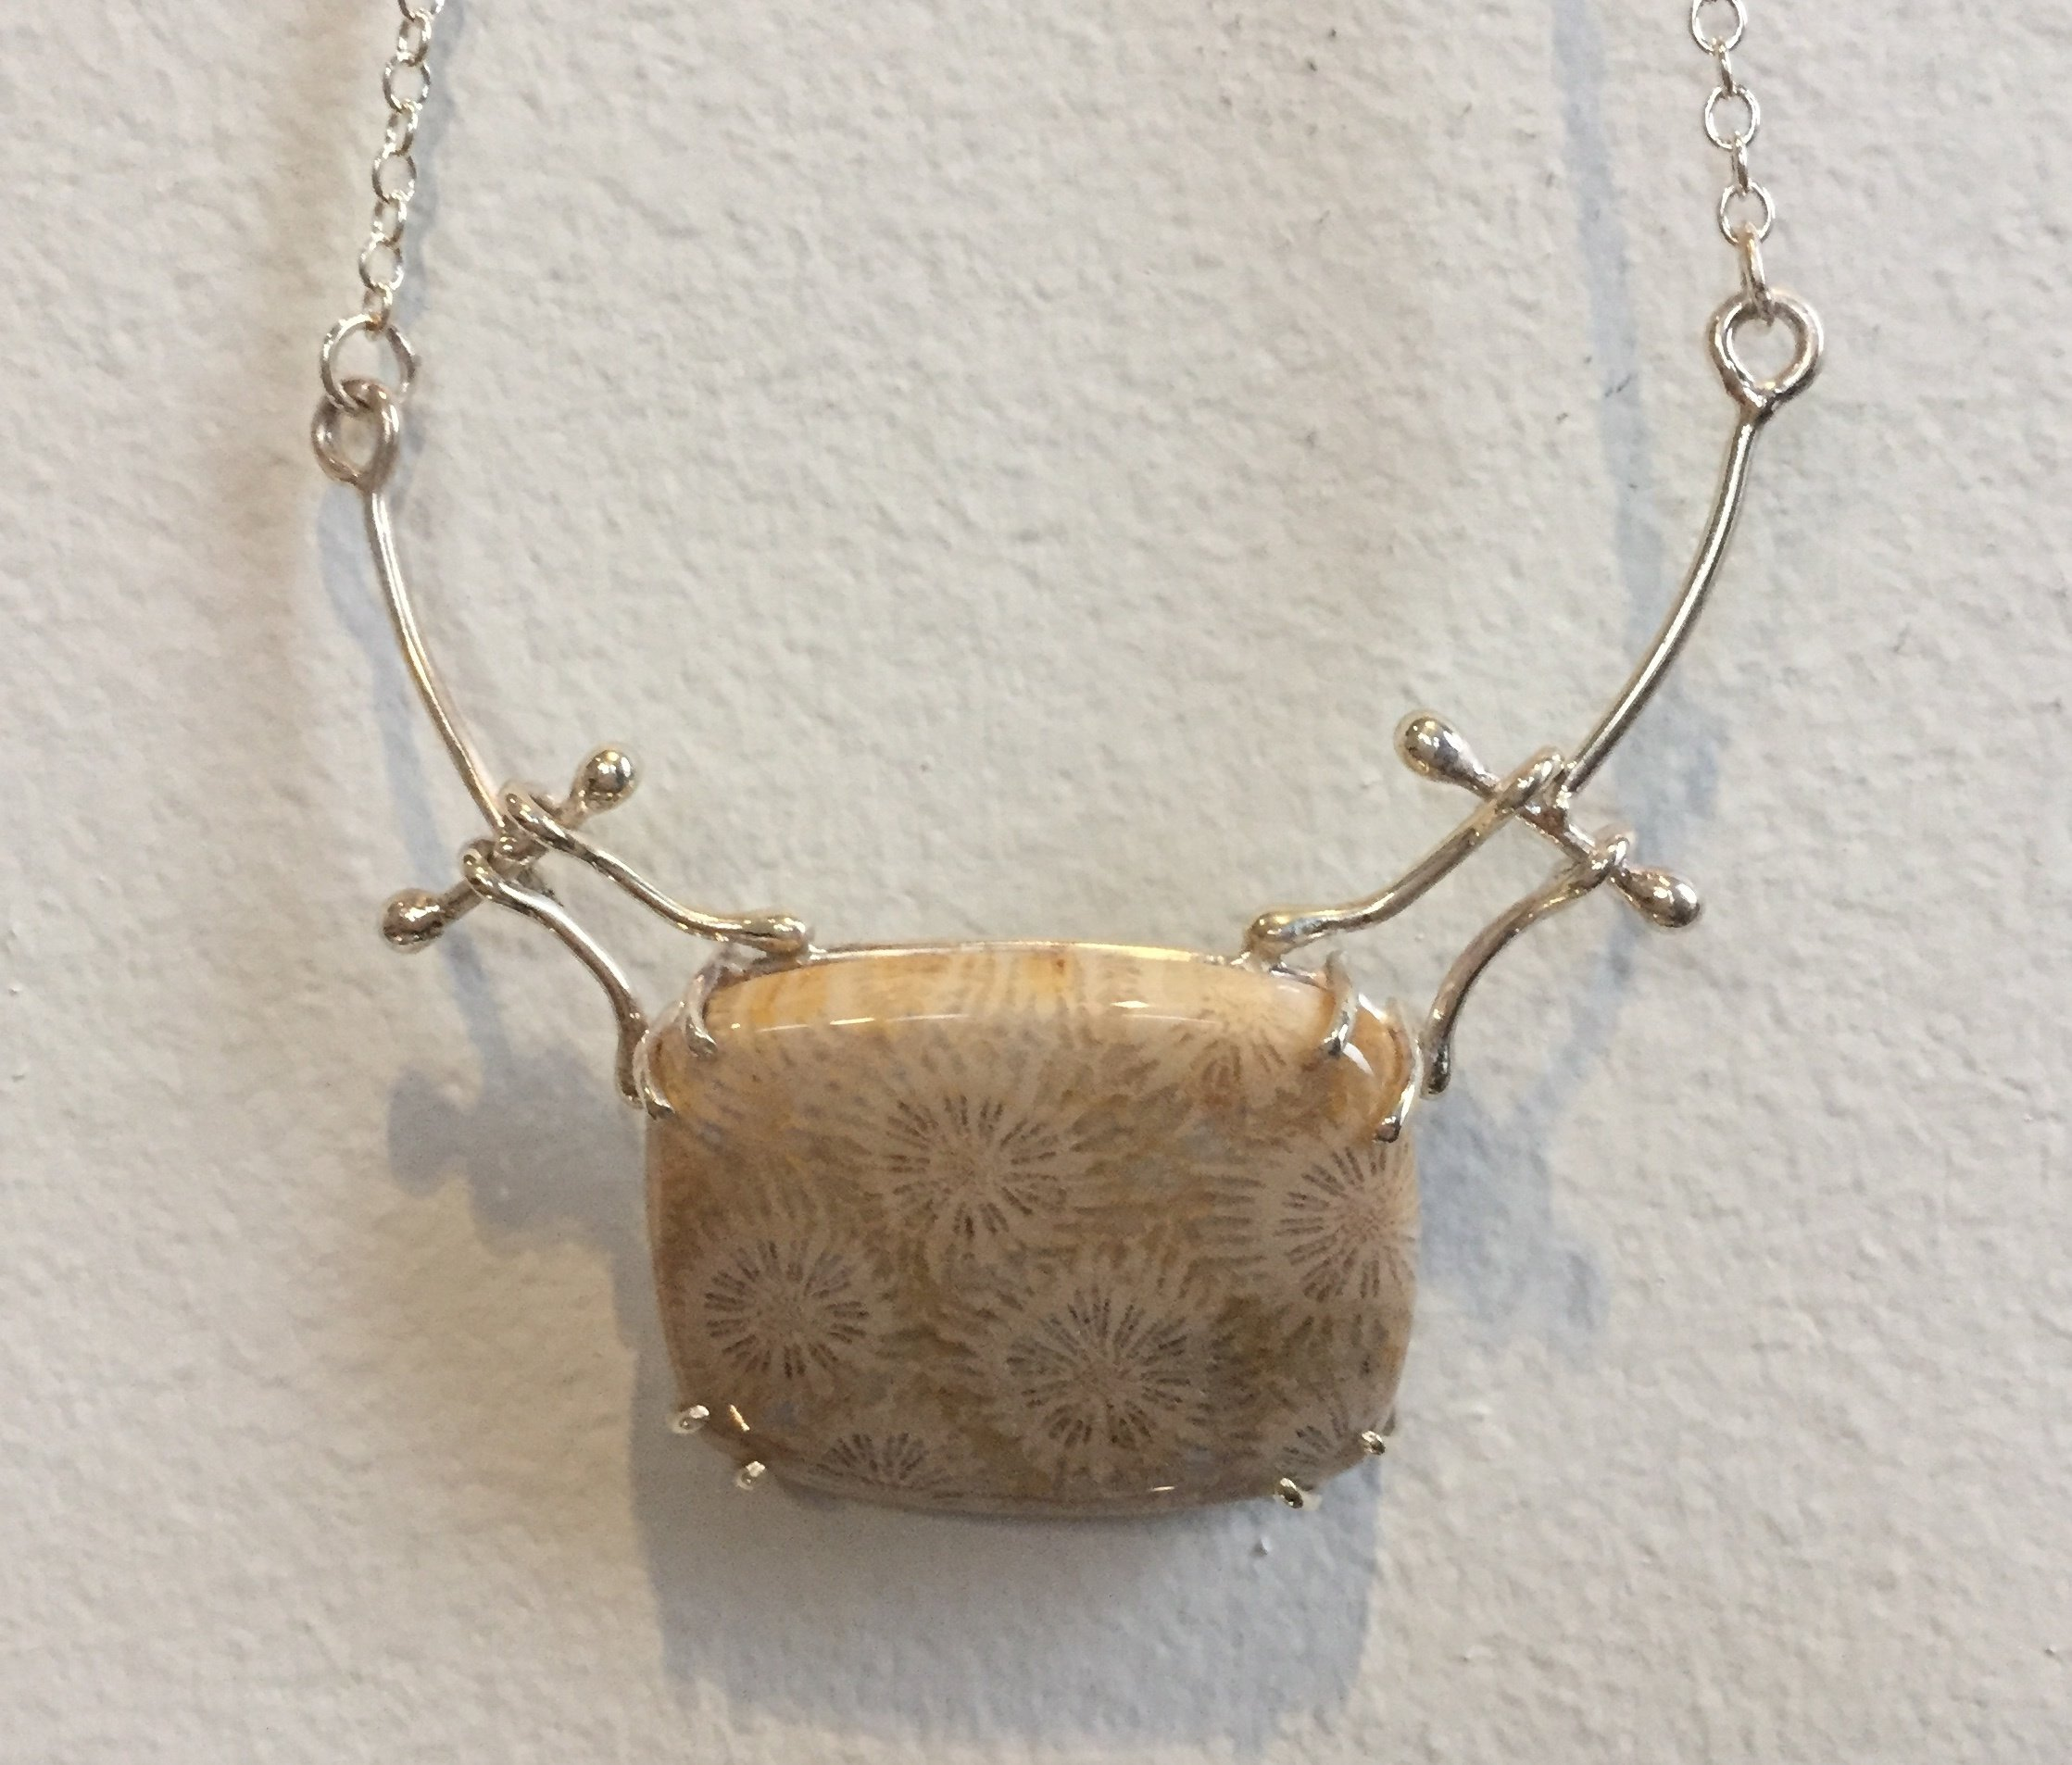 Petrified Coral Neckpiece coral and sterling silver $125. SOLD